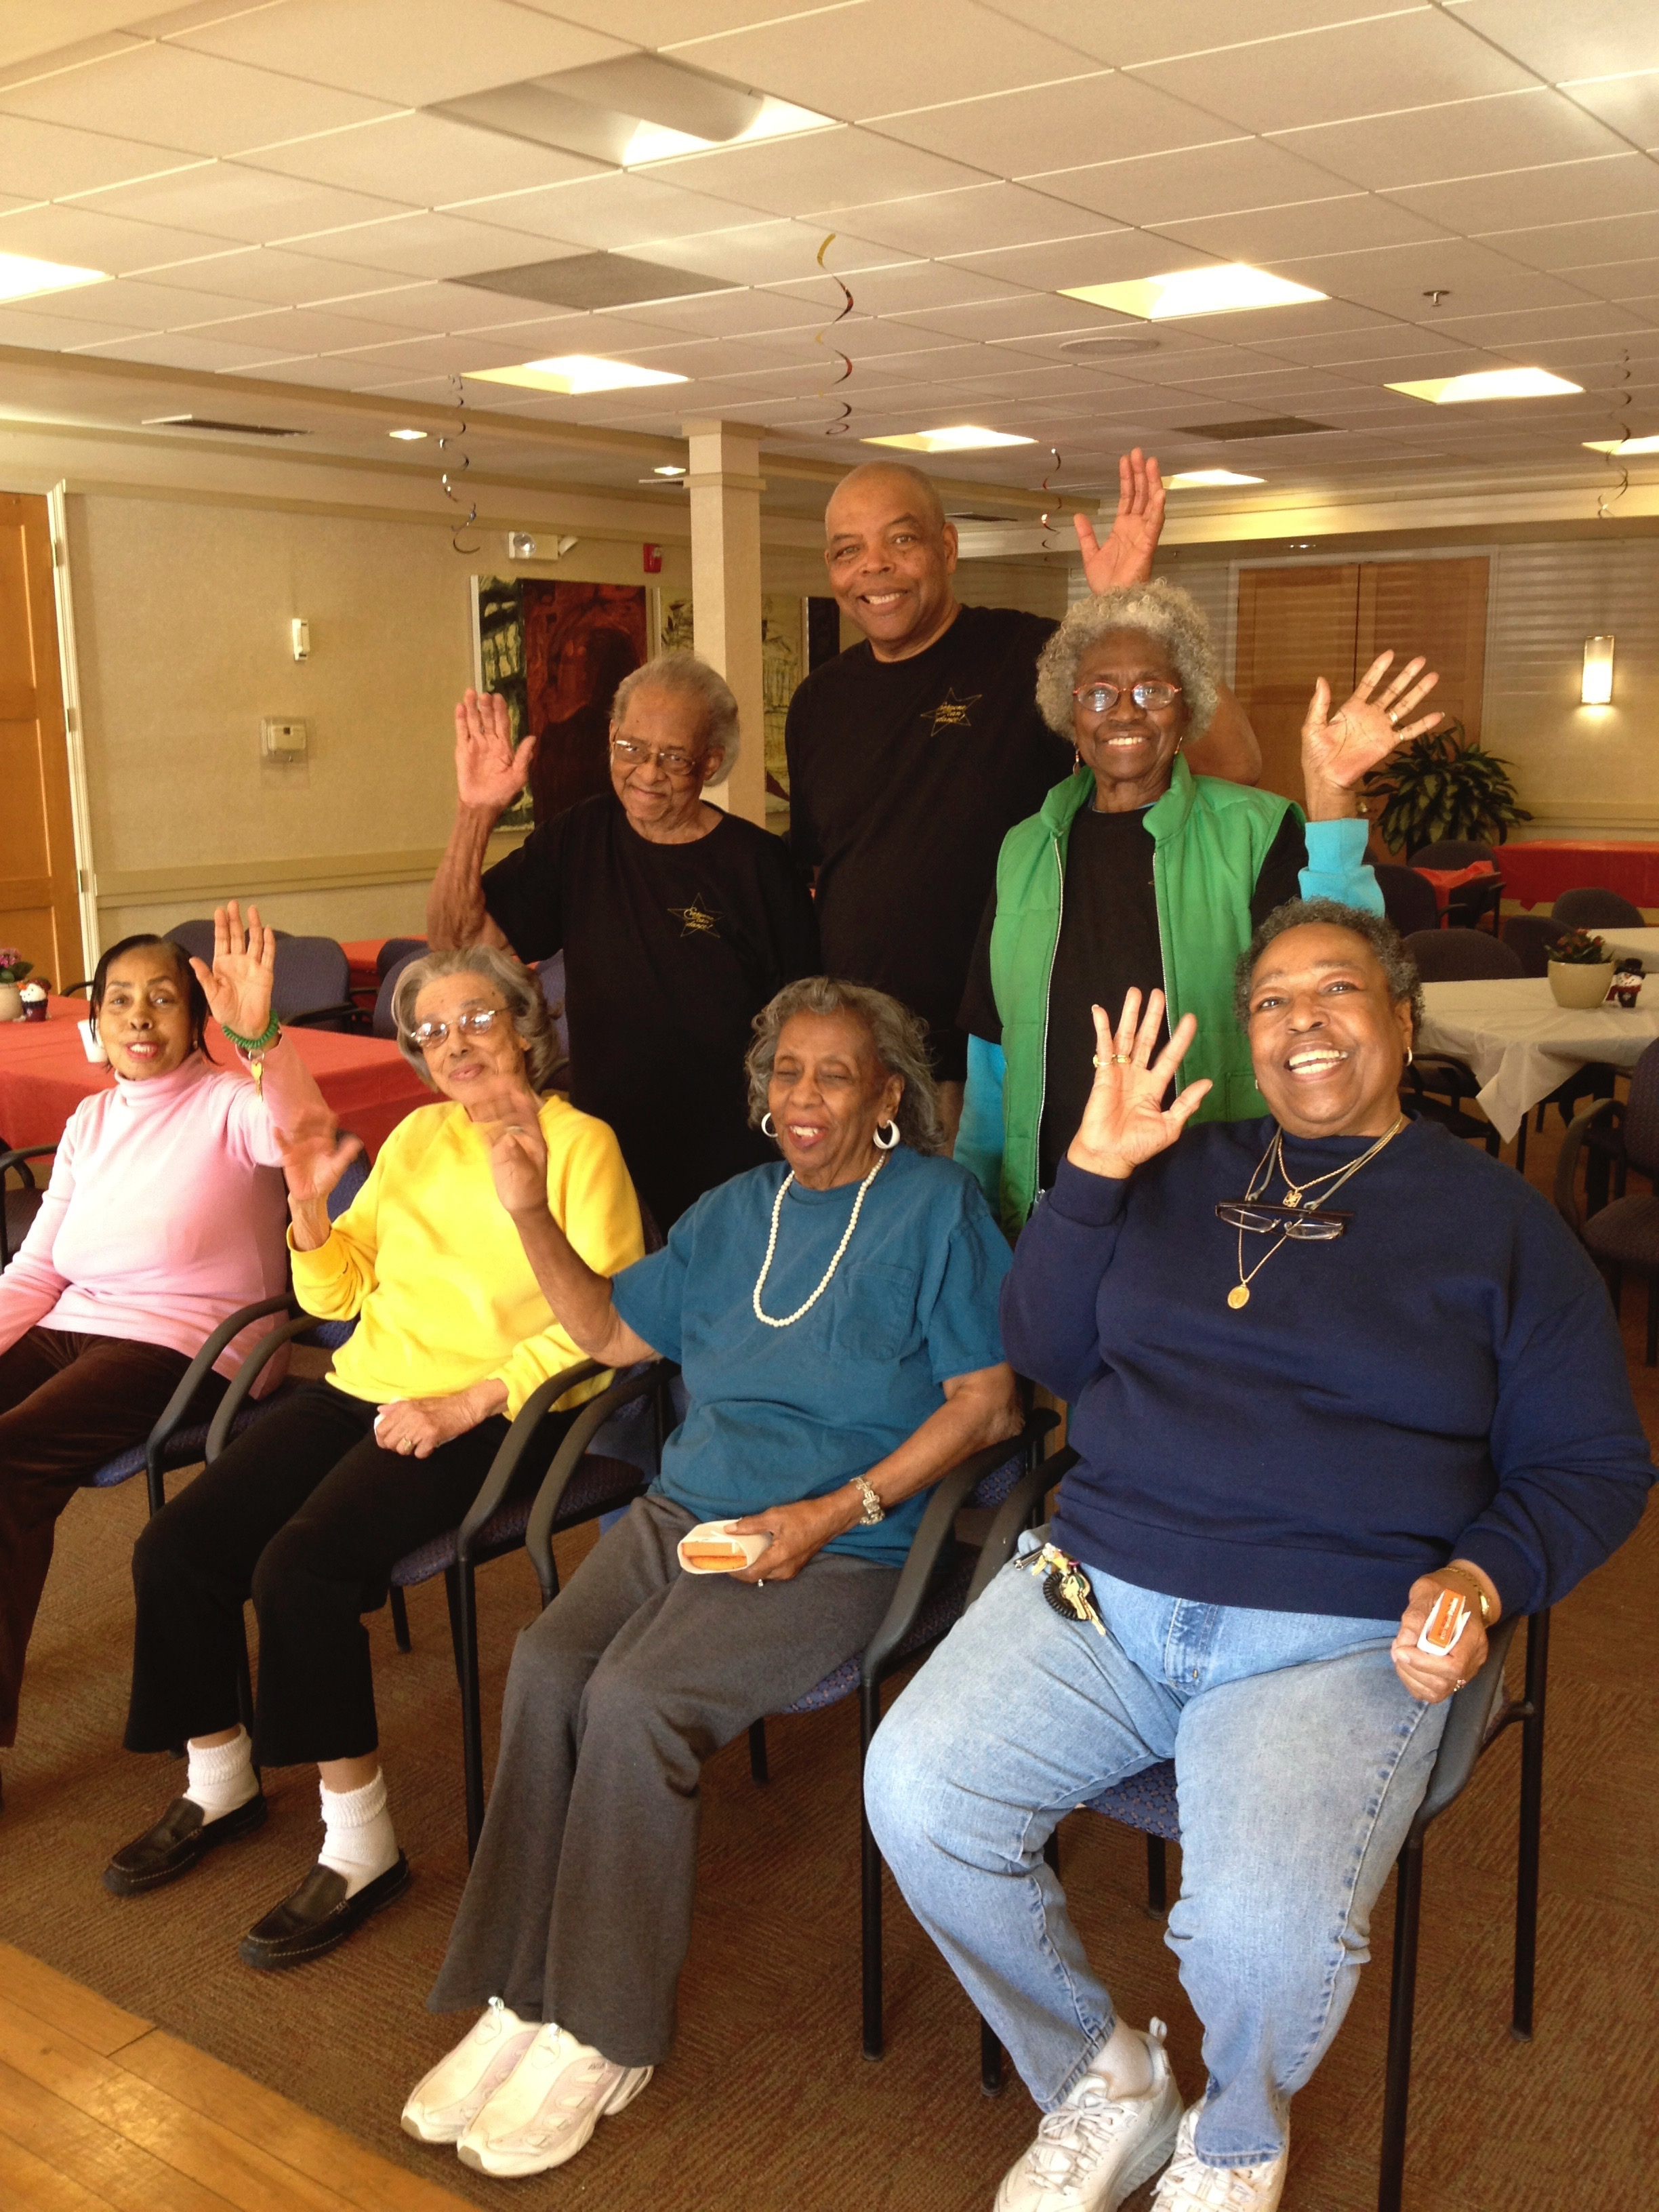 Some of our BDASL Seniors getting excited for their classes